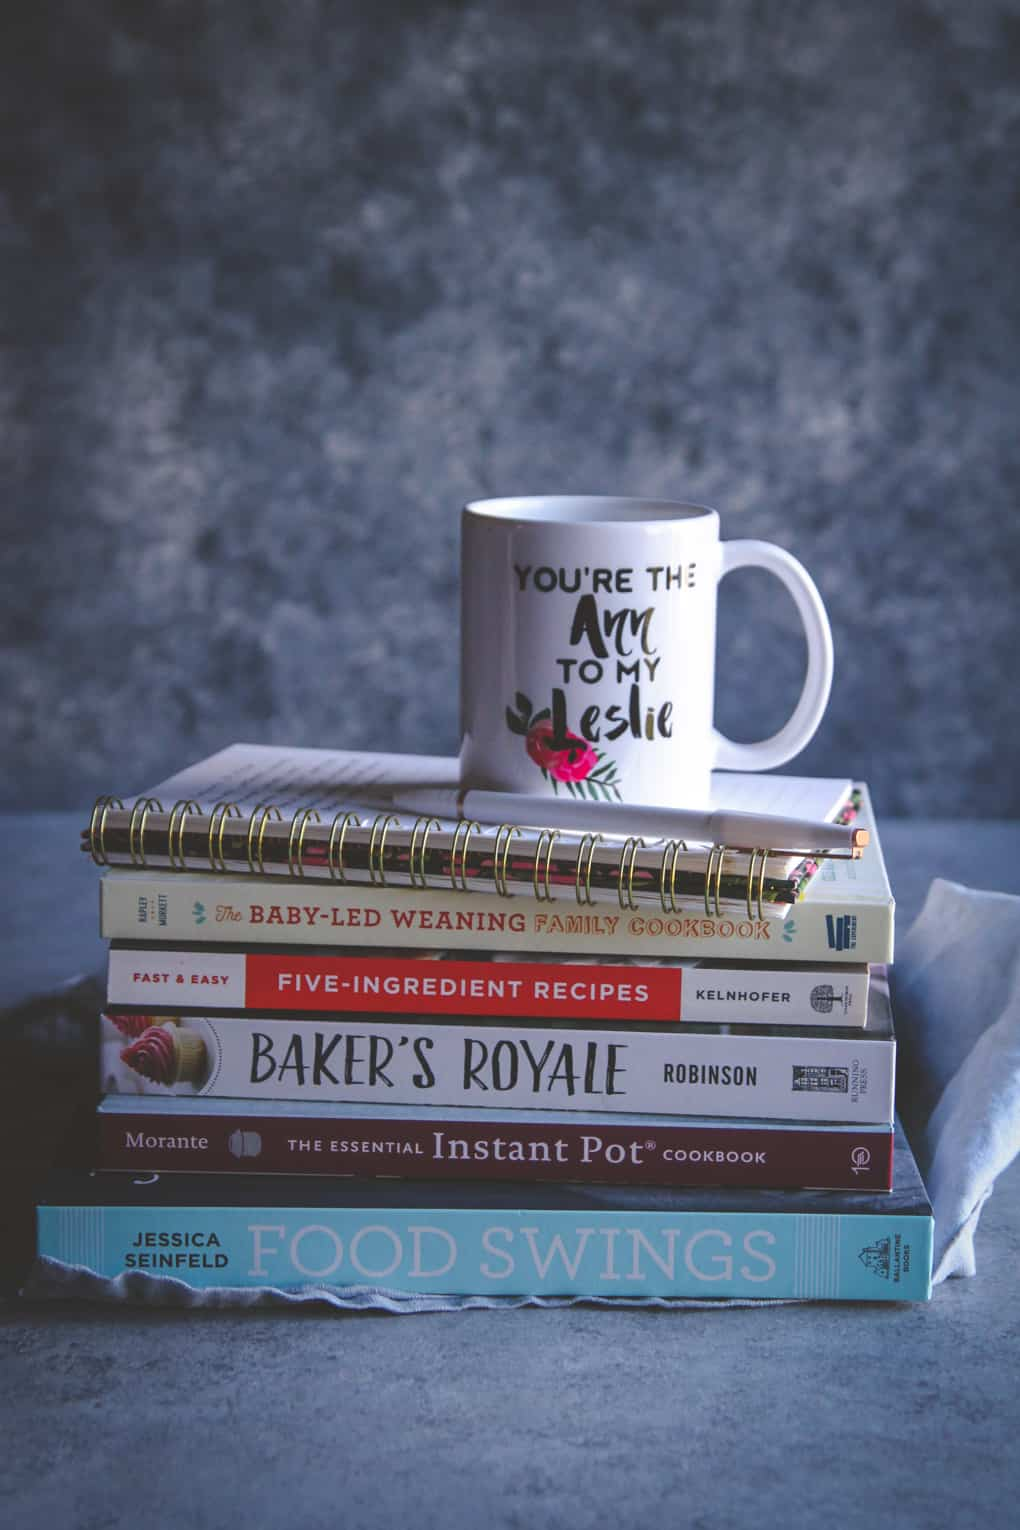 Favorite cookbooks list